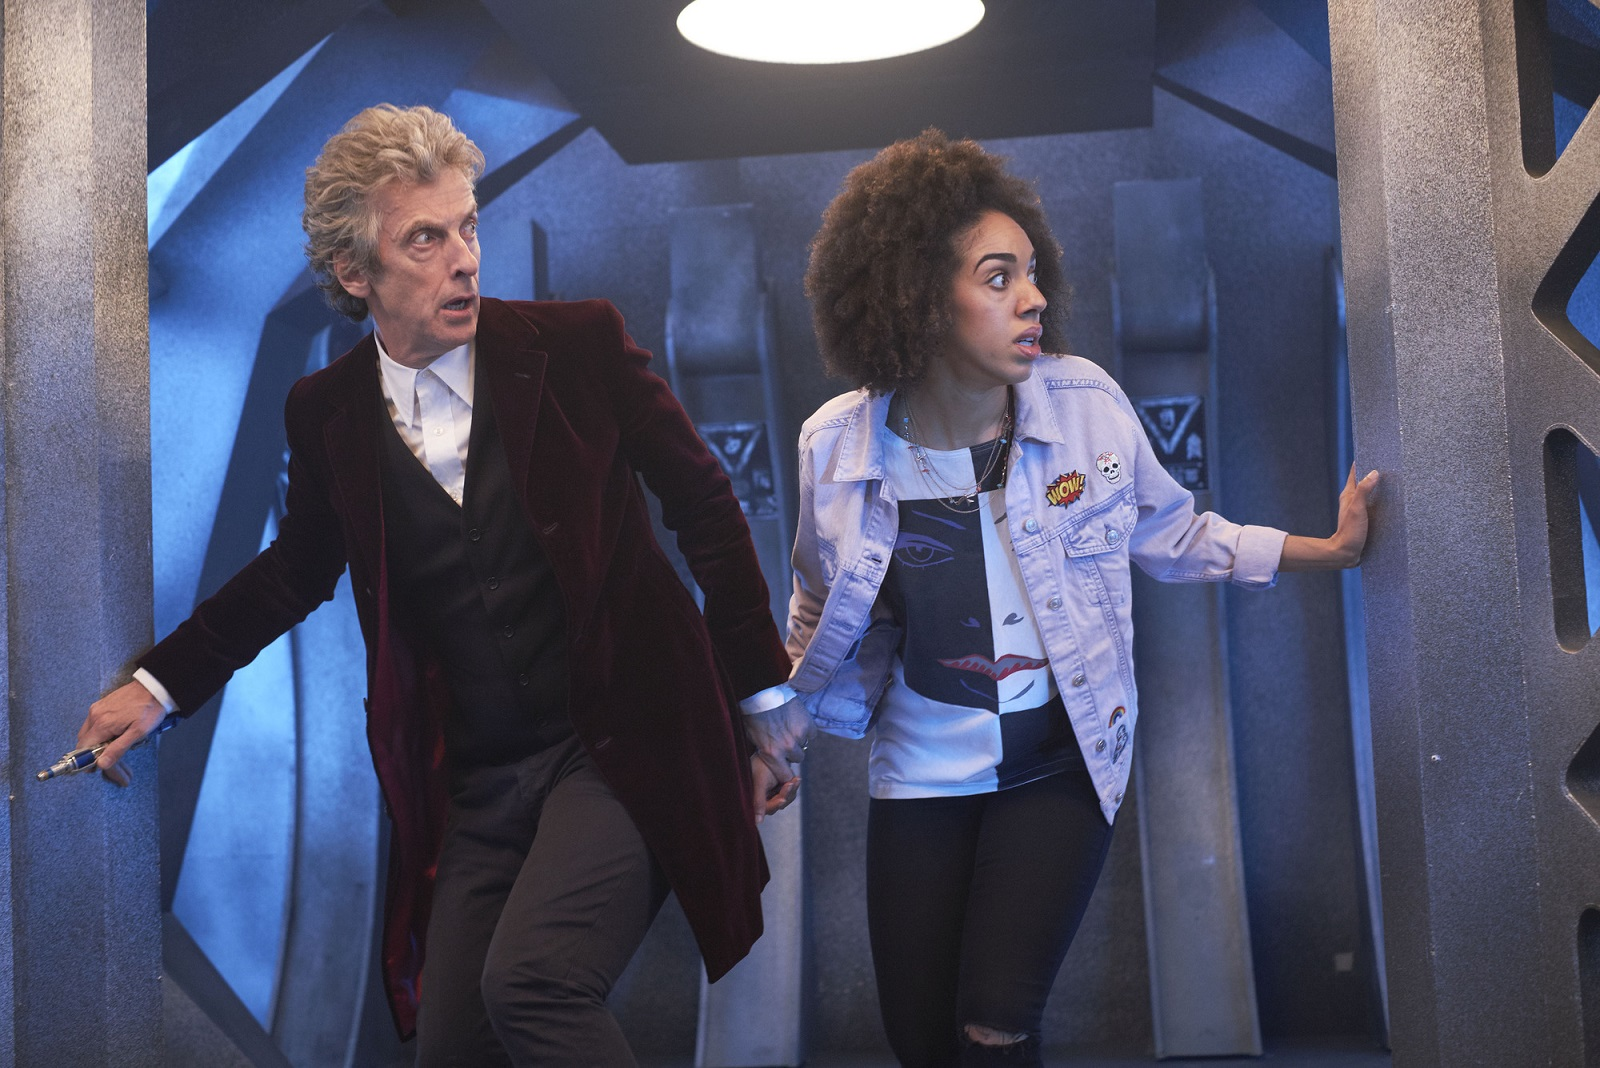 Join in on Tonight's Doctor Who Tweet-Along Rewatch of The Pilot